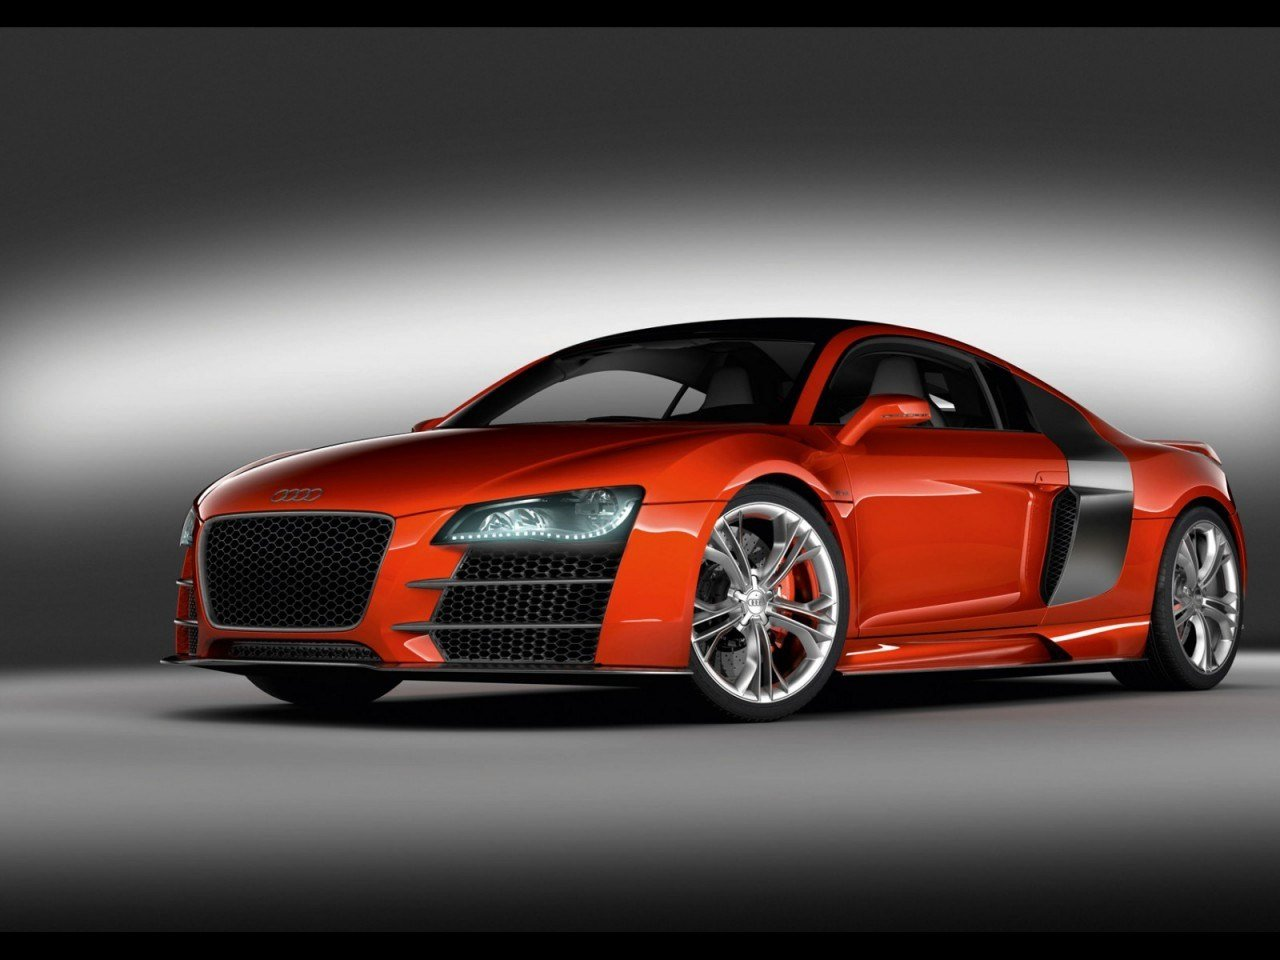 Latest Cool Red Audi Sports Car Desktop Hd Wallpapers Free Download